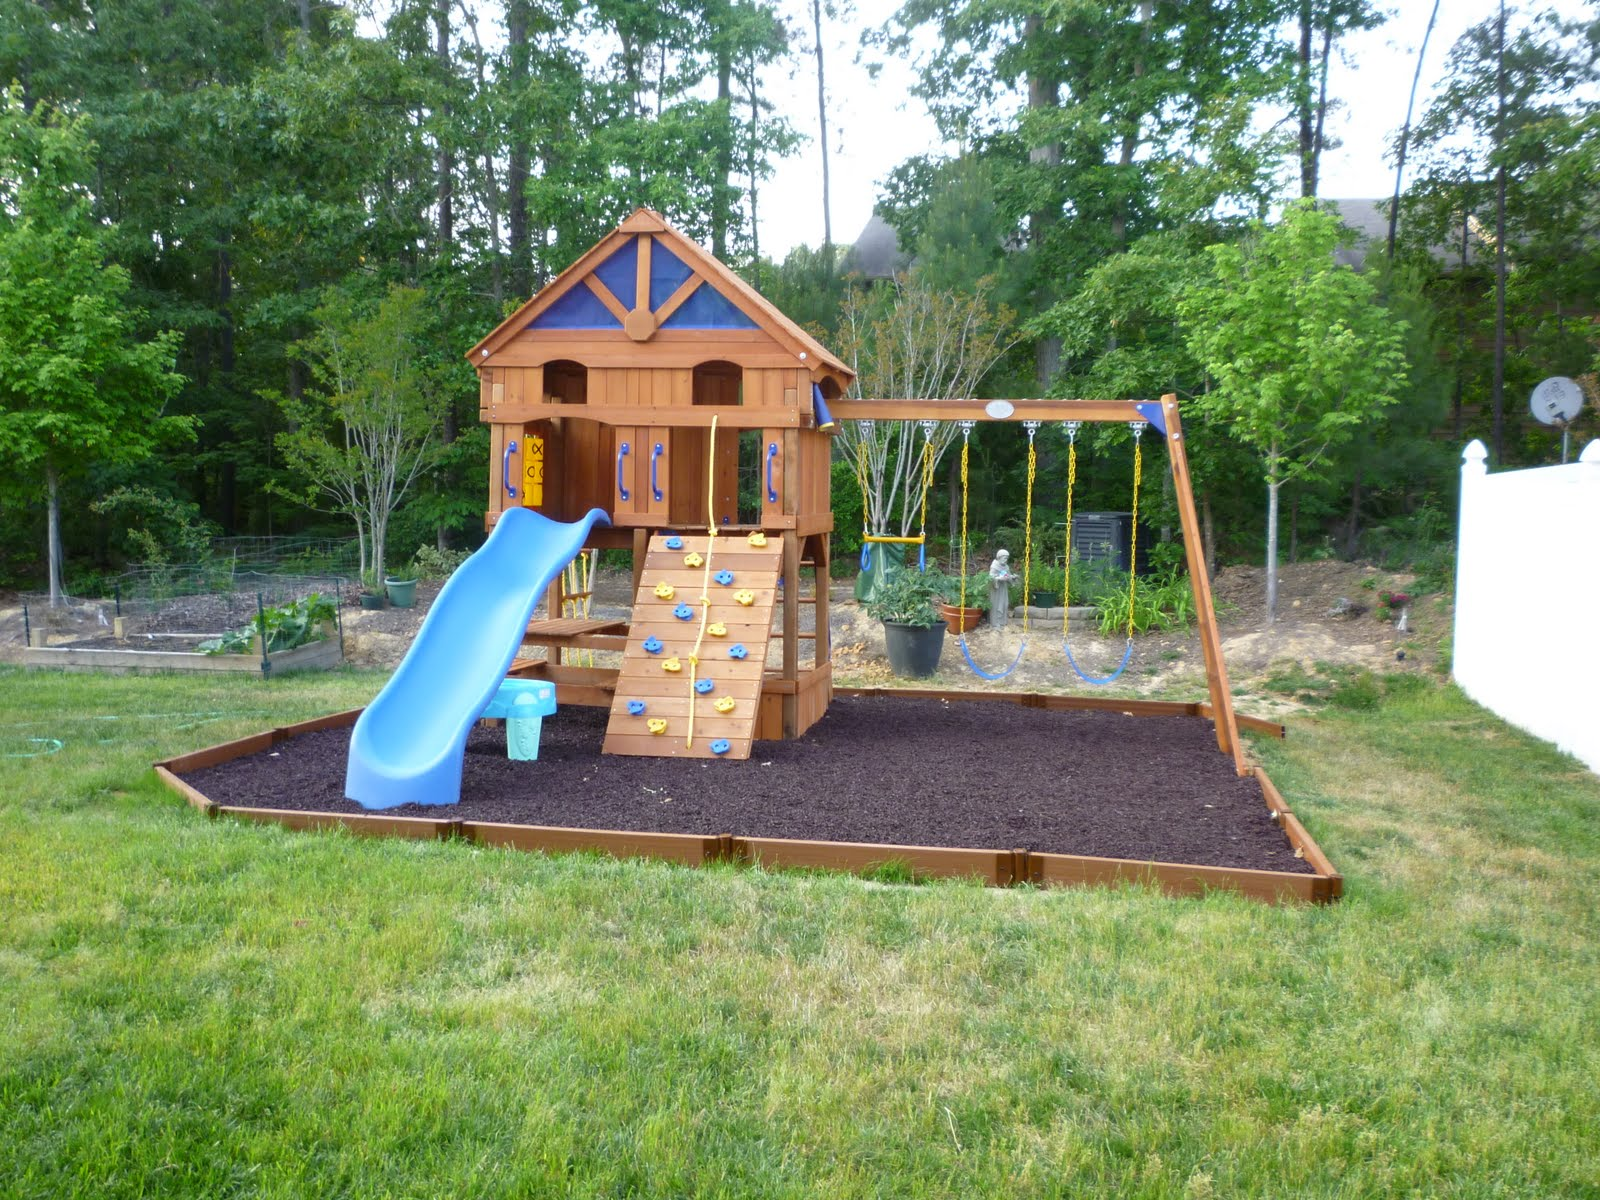 and here is the after photo of our very own backyard playground